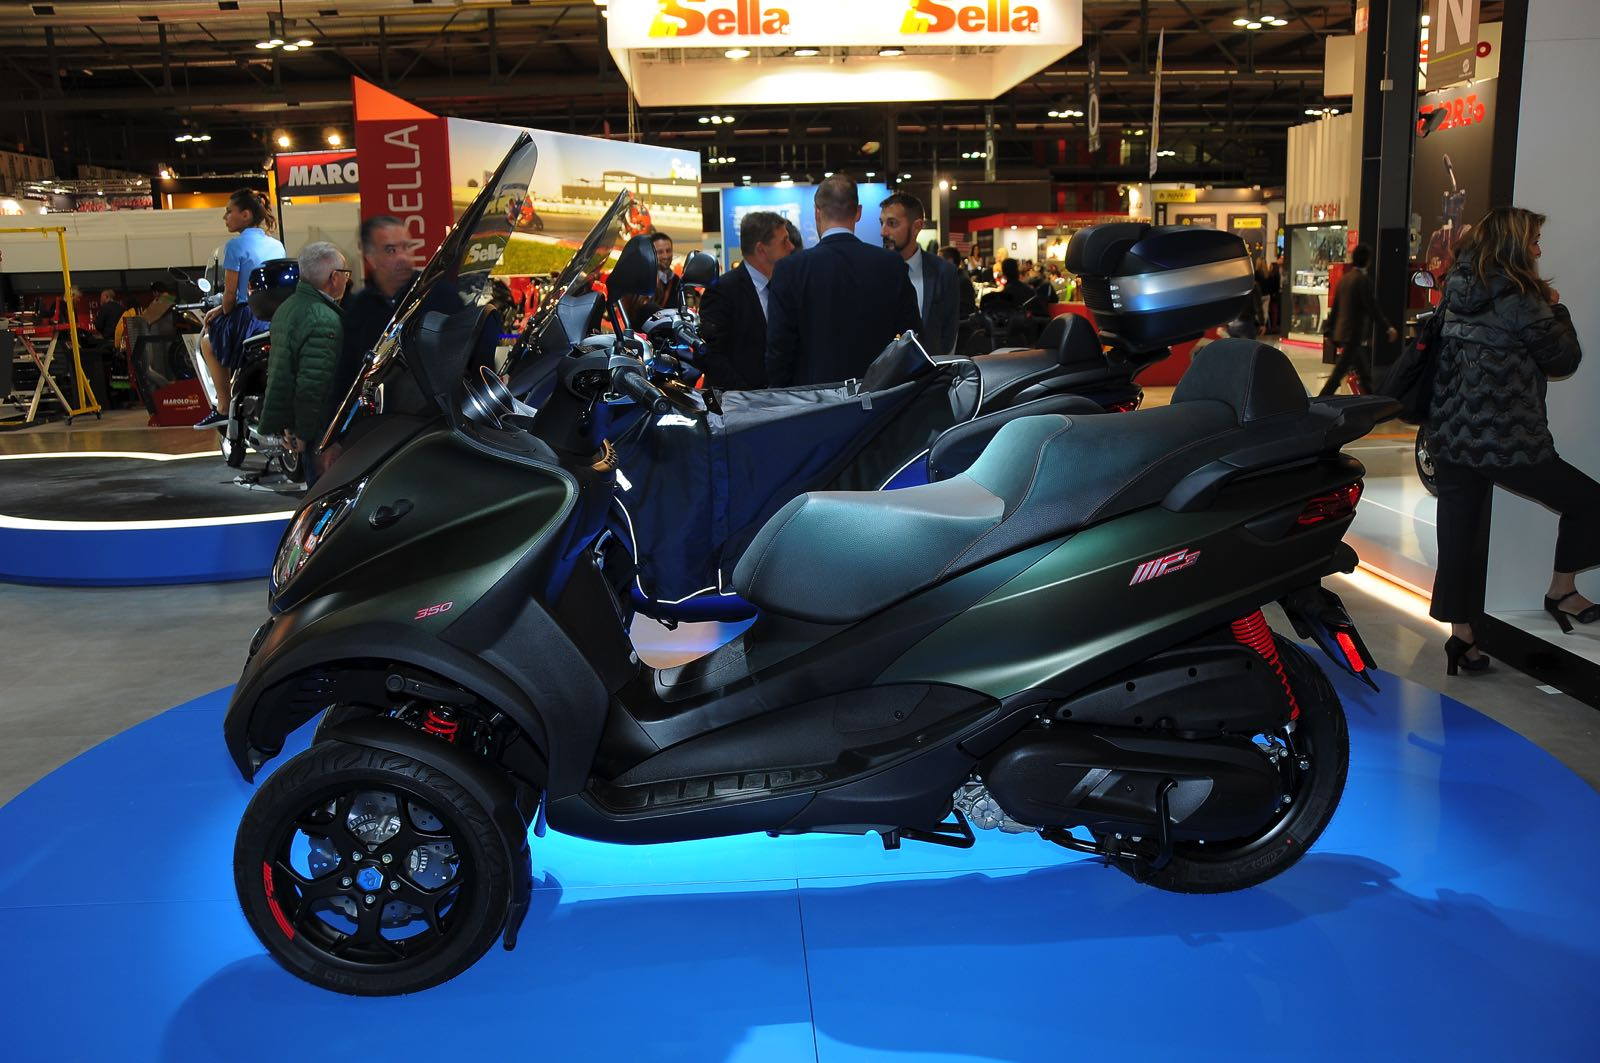 eicma 2017 piaggio mp3 350 e 500 dettagli tecnici e disponibilit. Black Bedroom Furniture Sets. Home Design Ideas